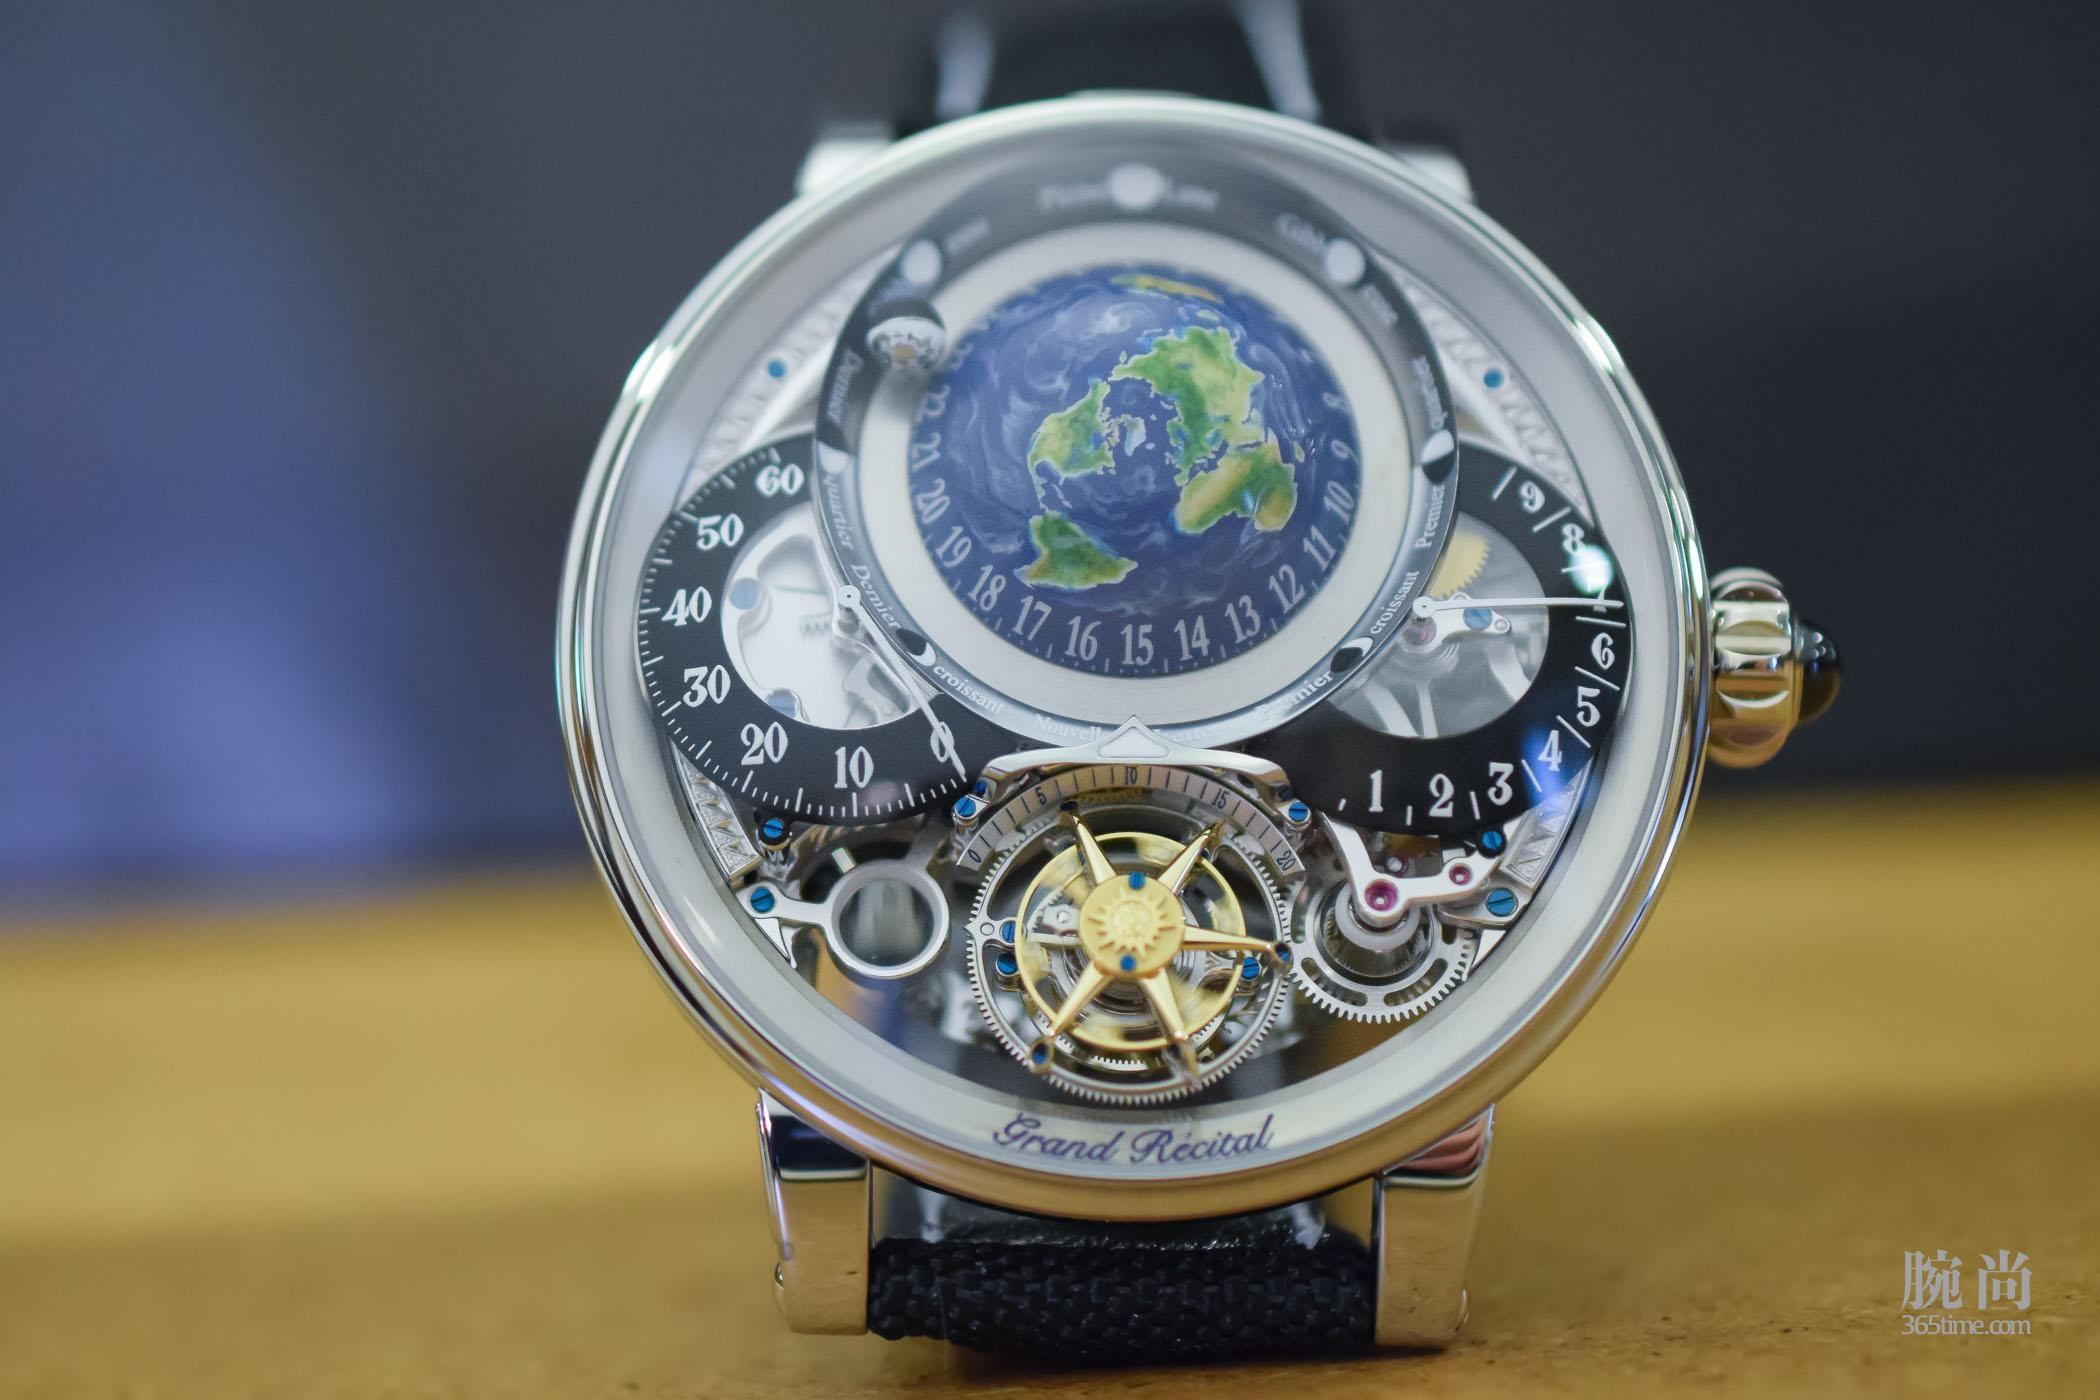 Bovet-Recital-22-Grand-Recital-review-6.jpg